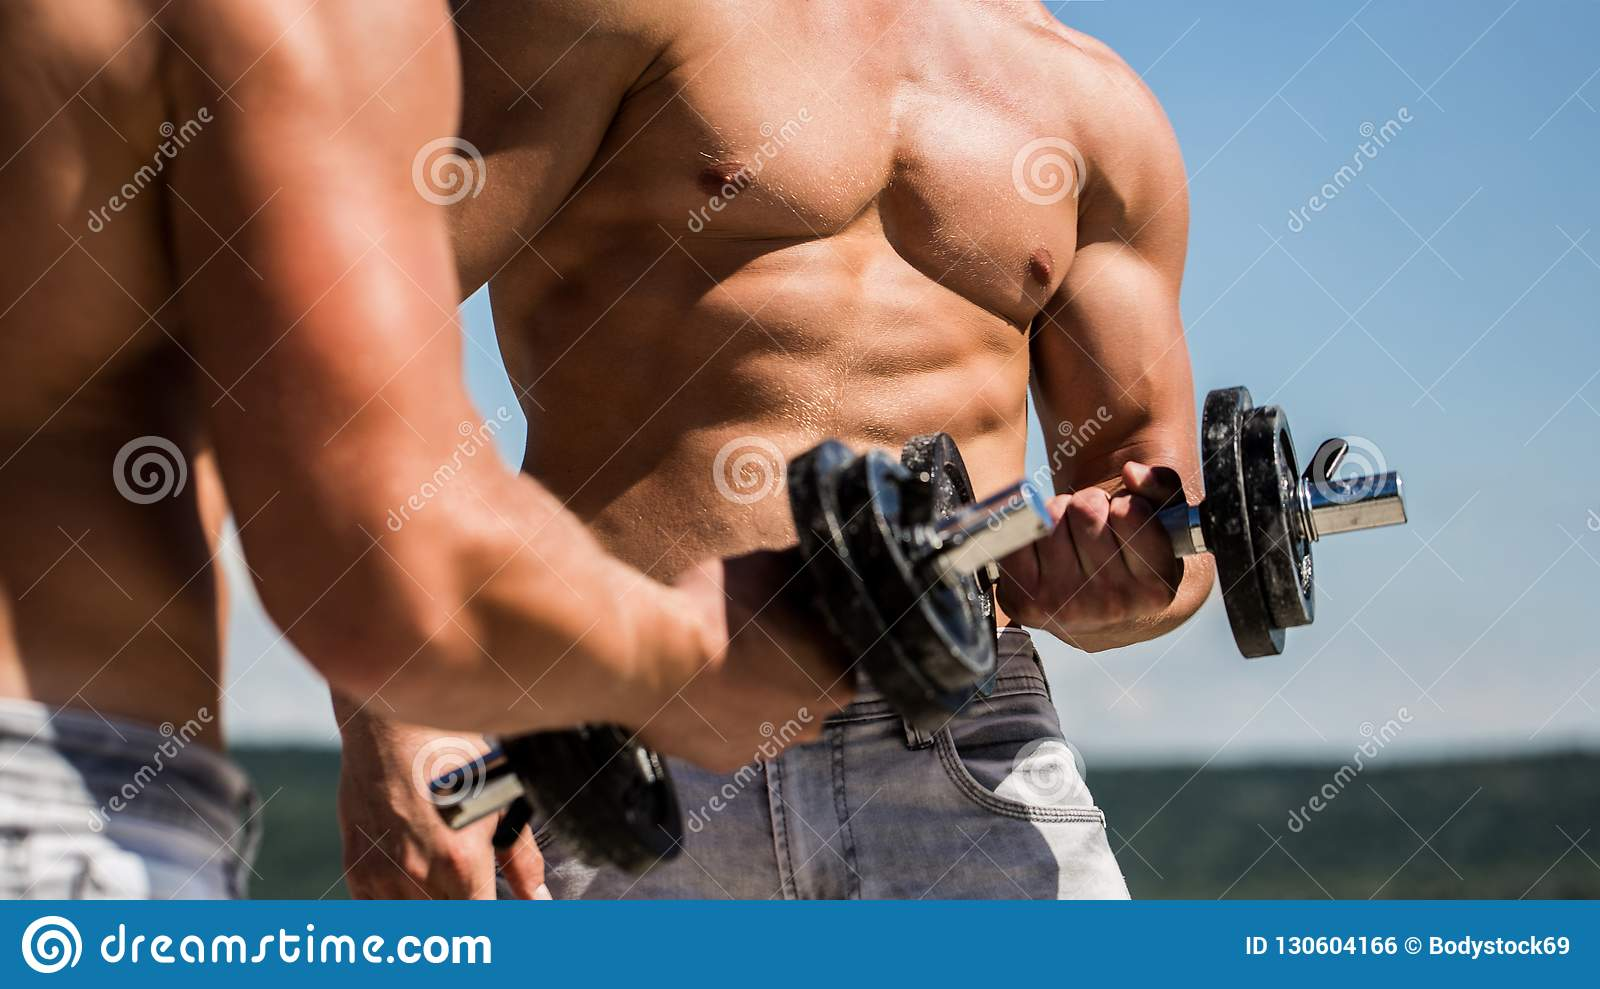 Dumbbell. Muscular bodybuilder guys, exercises with dumbbells. Strong bodybuilder, perfect deltoid muscles, shoulders